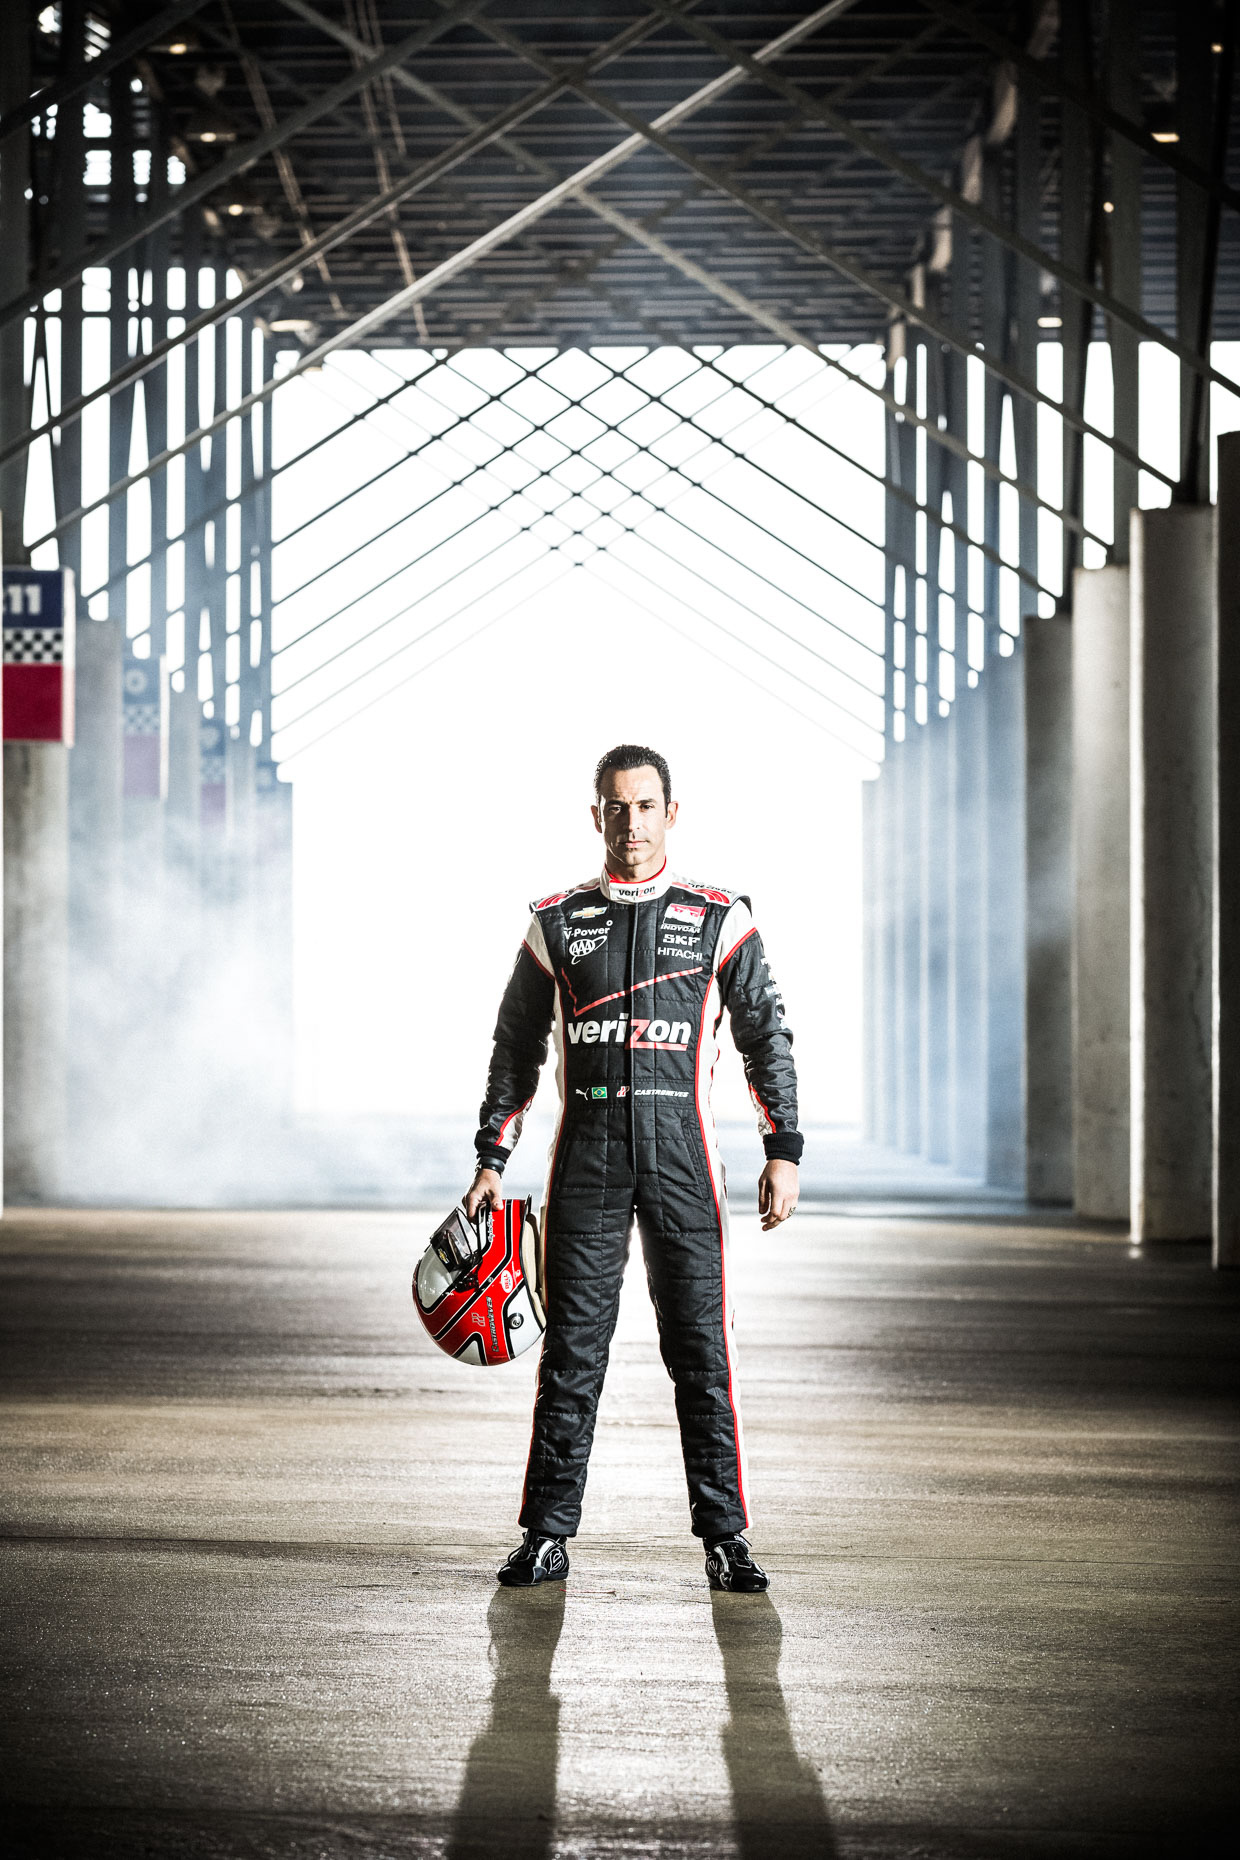 Dramatic full body portrait of athlete Helio Castroneves standing and holding helmet  IndyCar Driver Team Penske Garage Charlotte Motor Speedway below bleachers.  by Andy Batt